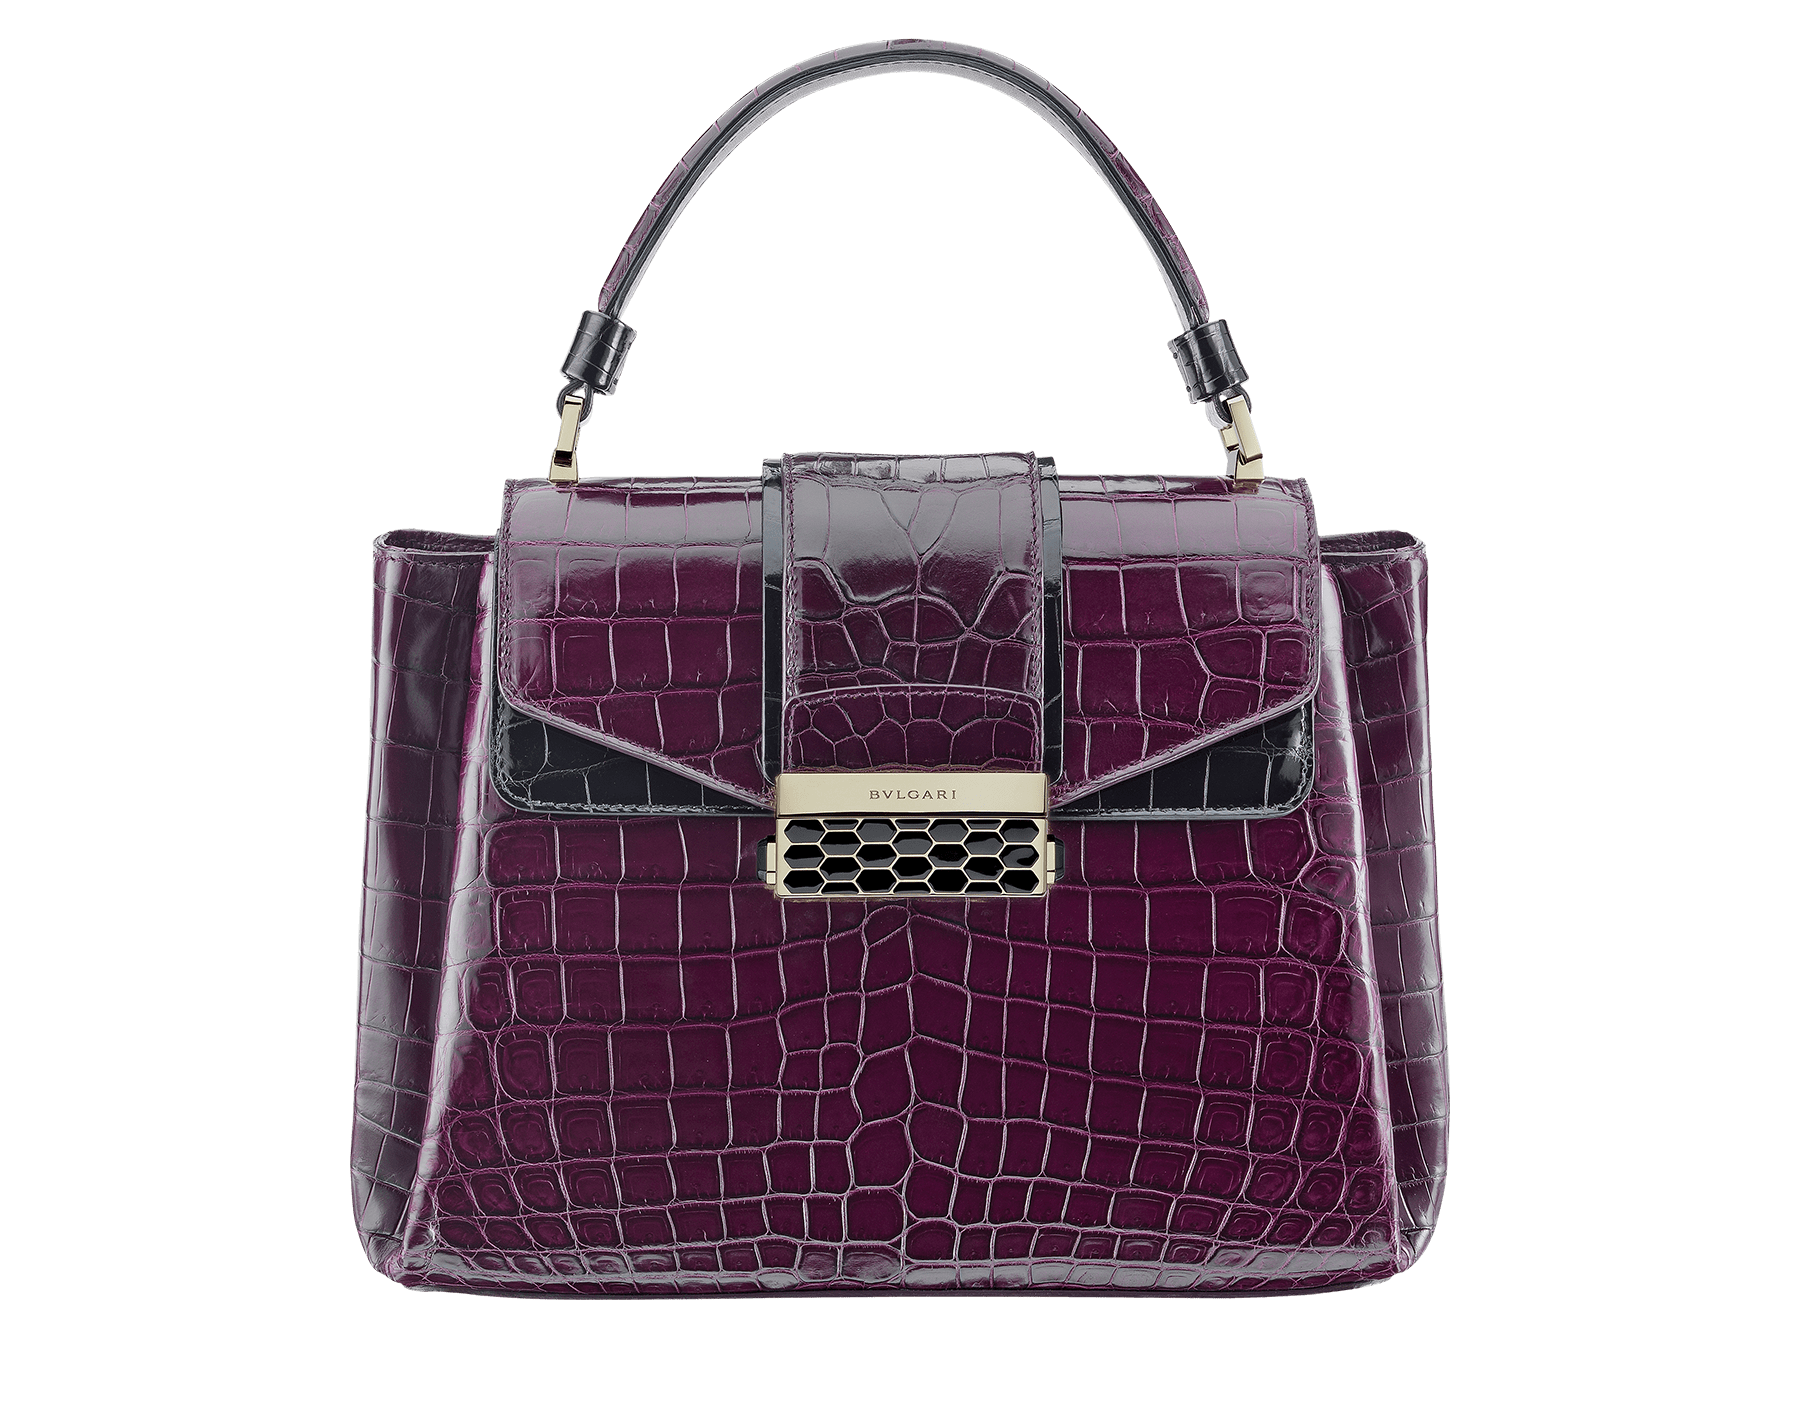 Top handle bag Serpenti Viper in plum amethyst and black shiny crocodile skin. Brass light gold plated hardware and snap closure in black shiny enamel, with iconic Scaglie design. 281775 image 1